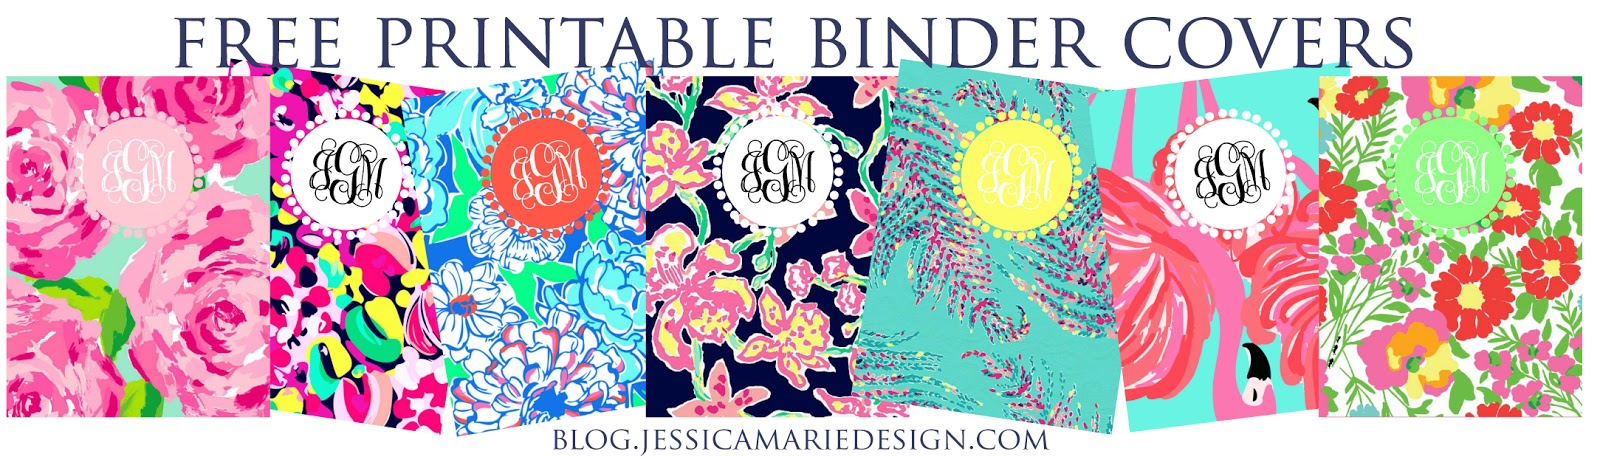 create binder cover online free thevillas co